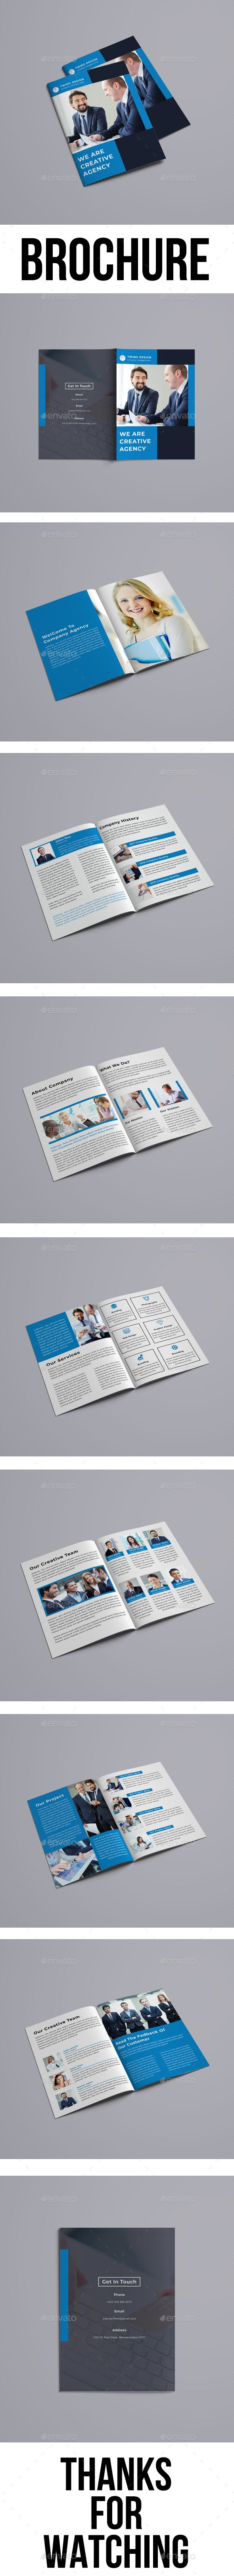 Best Brochure Template PSD Designs Images On Pinterest - Brochure design templates free download